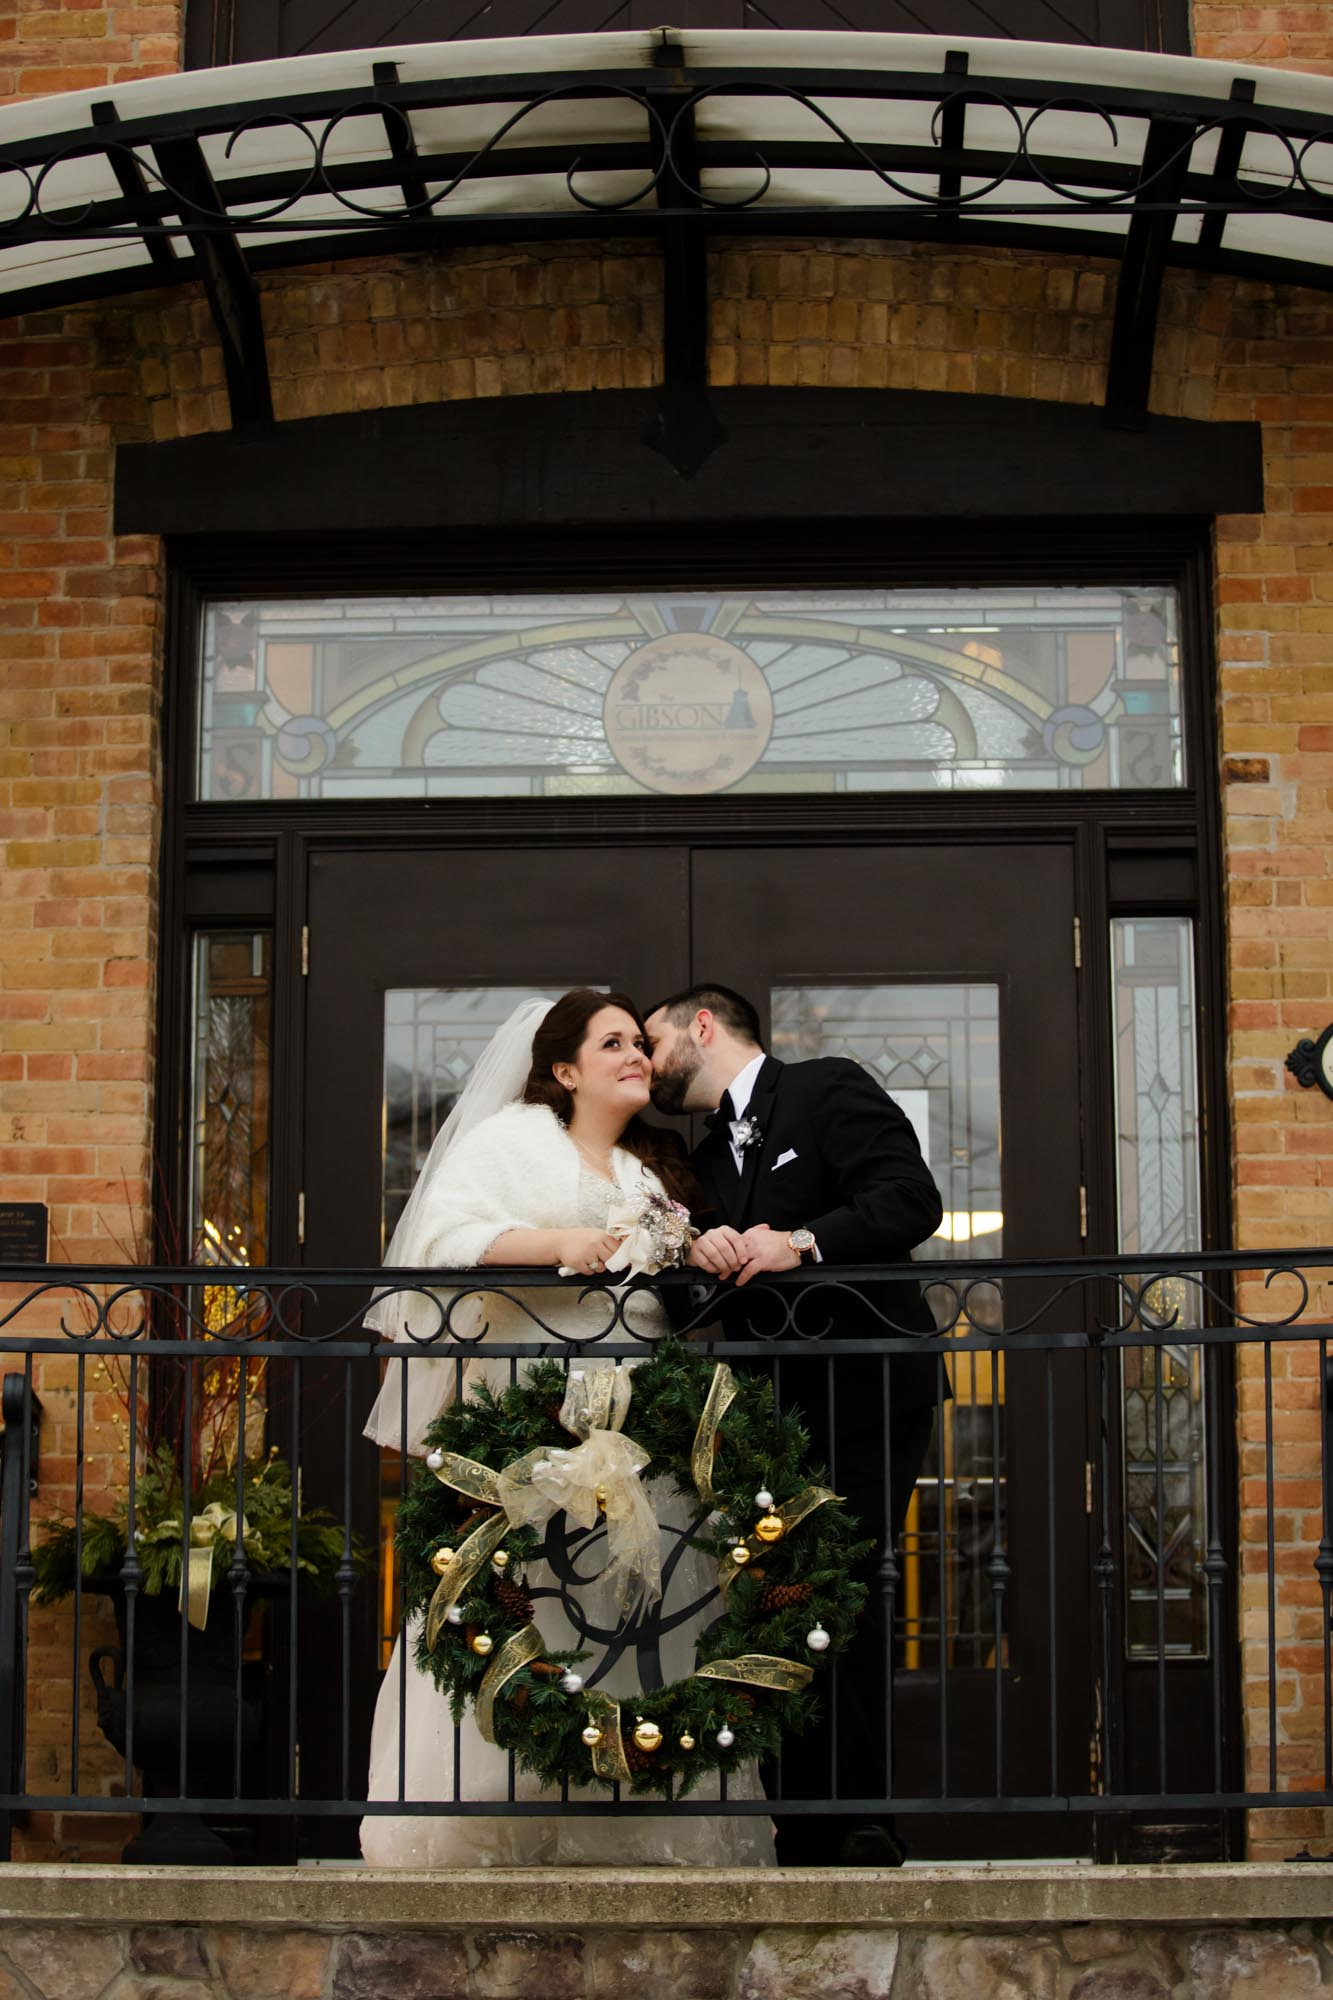 Wedding Photography Fusion At The Gibson Centre In Alliston Ontario Darlington Studios